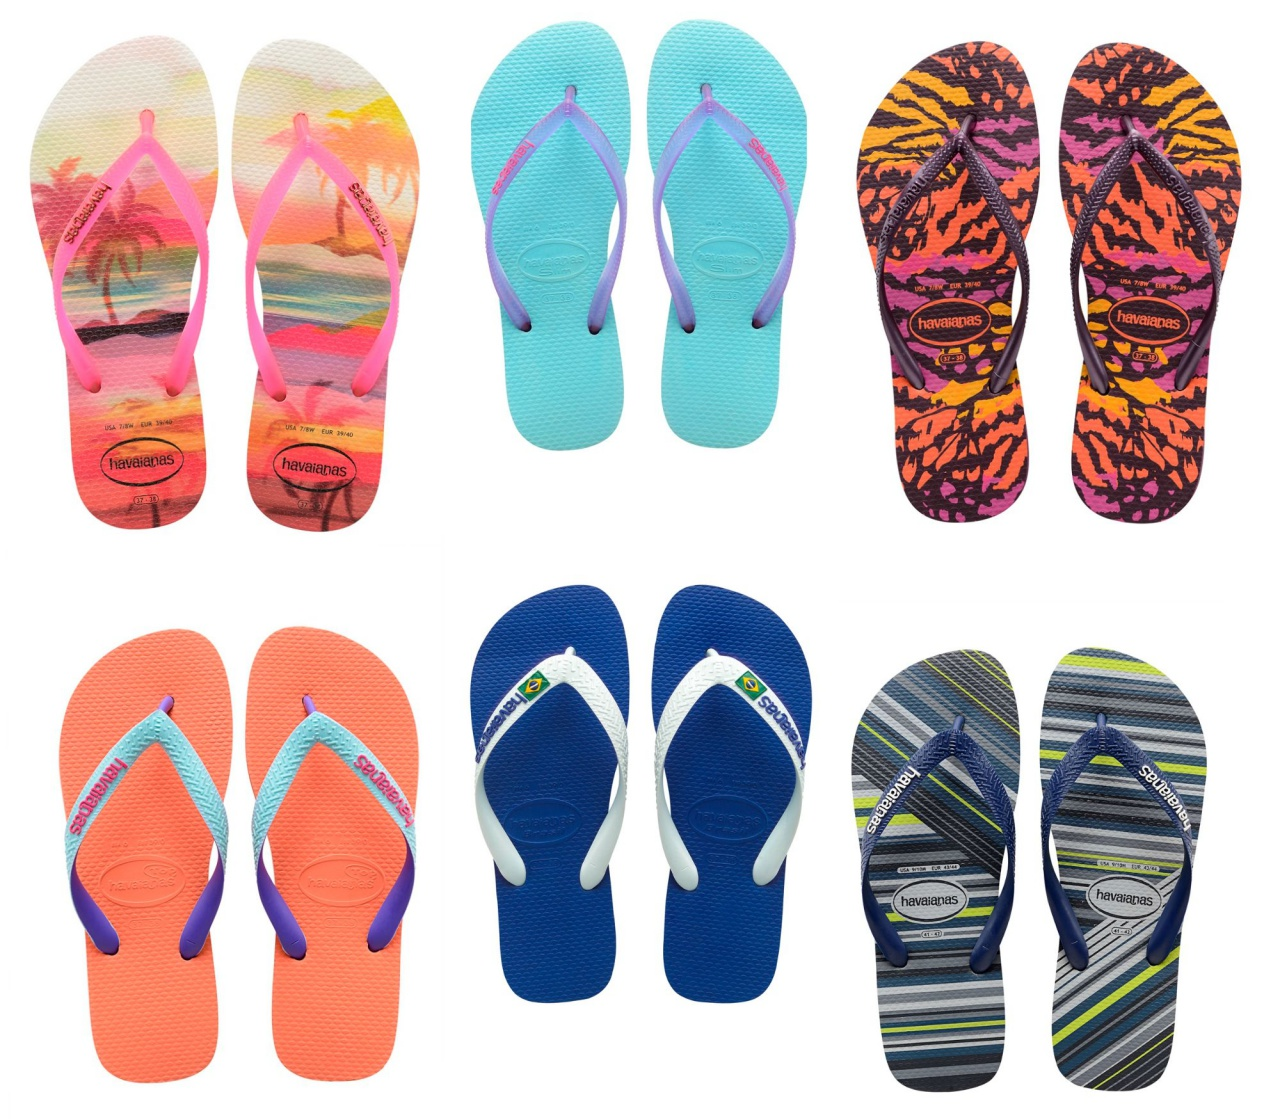 c2fa1170dc5278 Havaianas Launch Summer Beach Showers